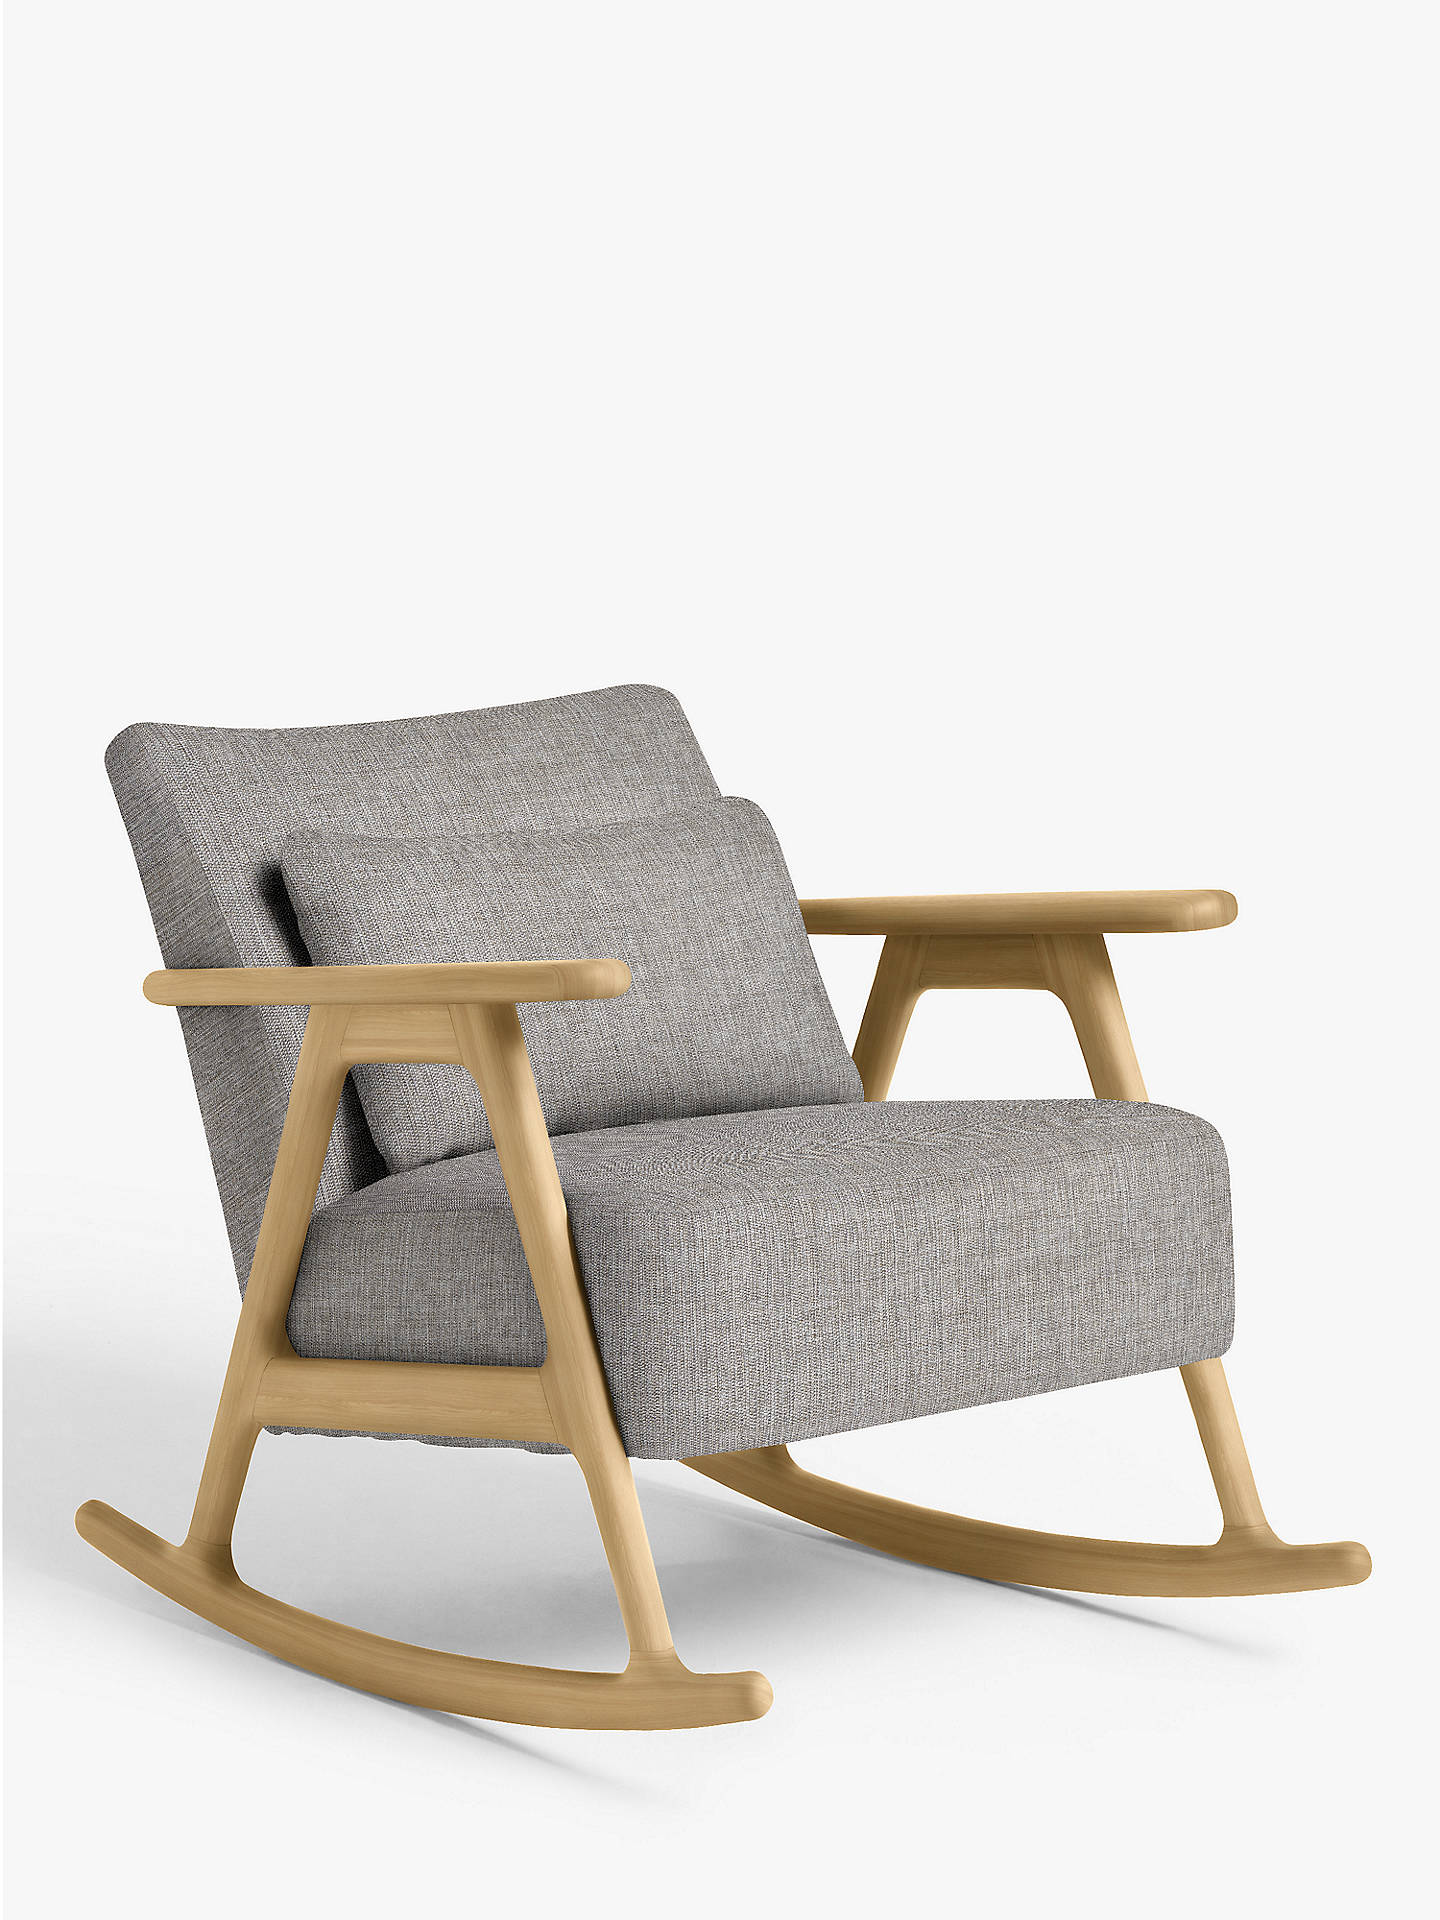 Astonishing John Lewis Partners Hendricks Rocking Chair Light Wood Frame Stanton French Grey Home Interior And Landscaping Spoatsignezvosmurscom